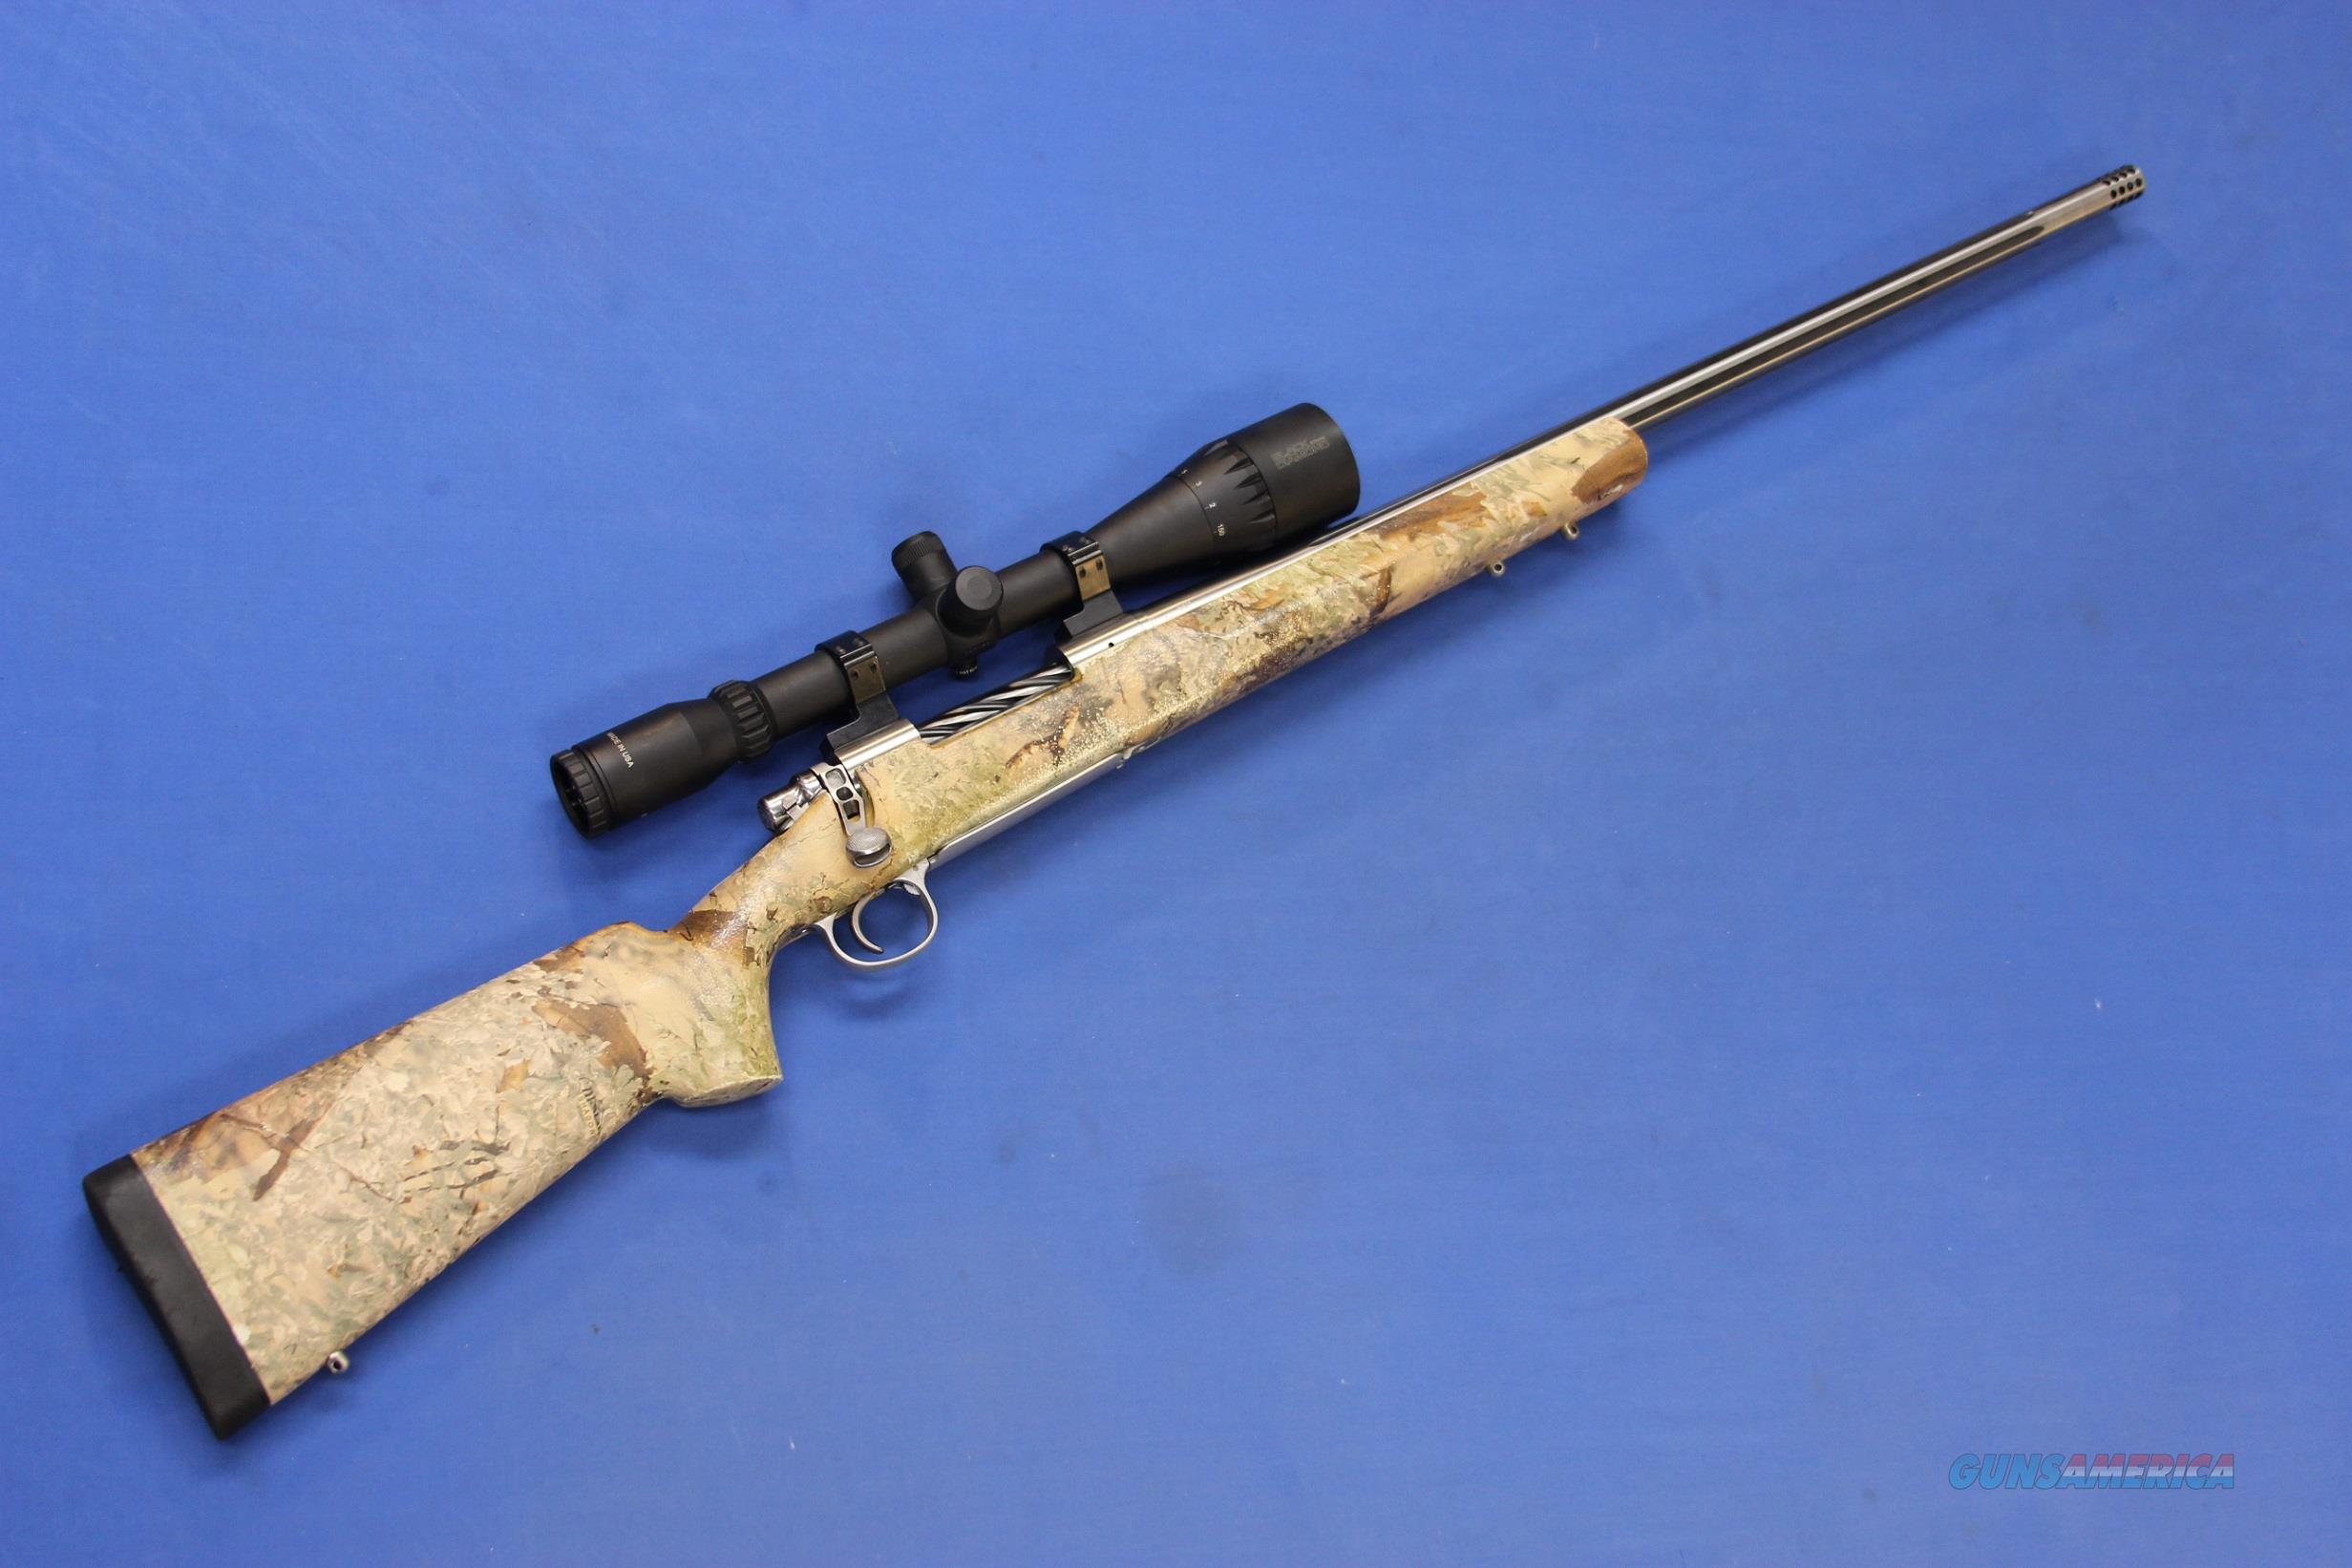 REMINGTON 700 SENDERO CUSTOM SS 7mm REM MAG w/BURRIS BLACK DIAMOND  Guns > Rifles > Remington Rifles - Modern > Model 700 > Sporting